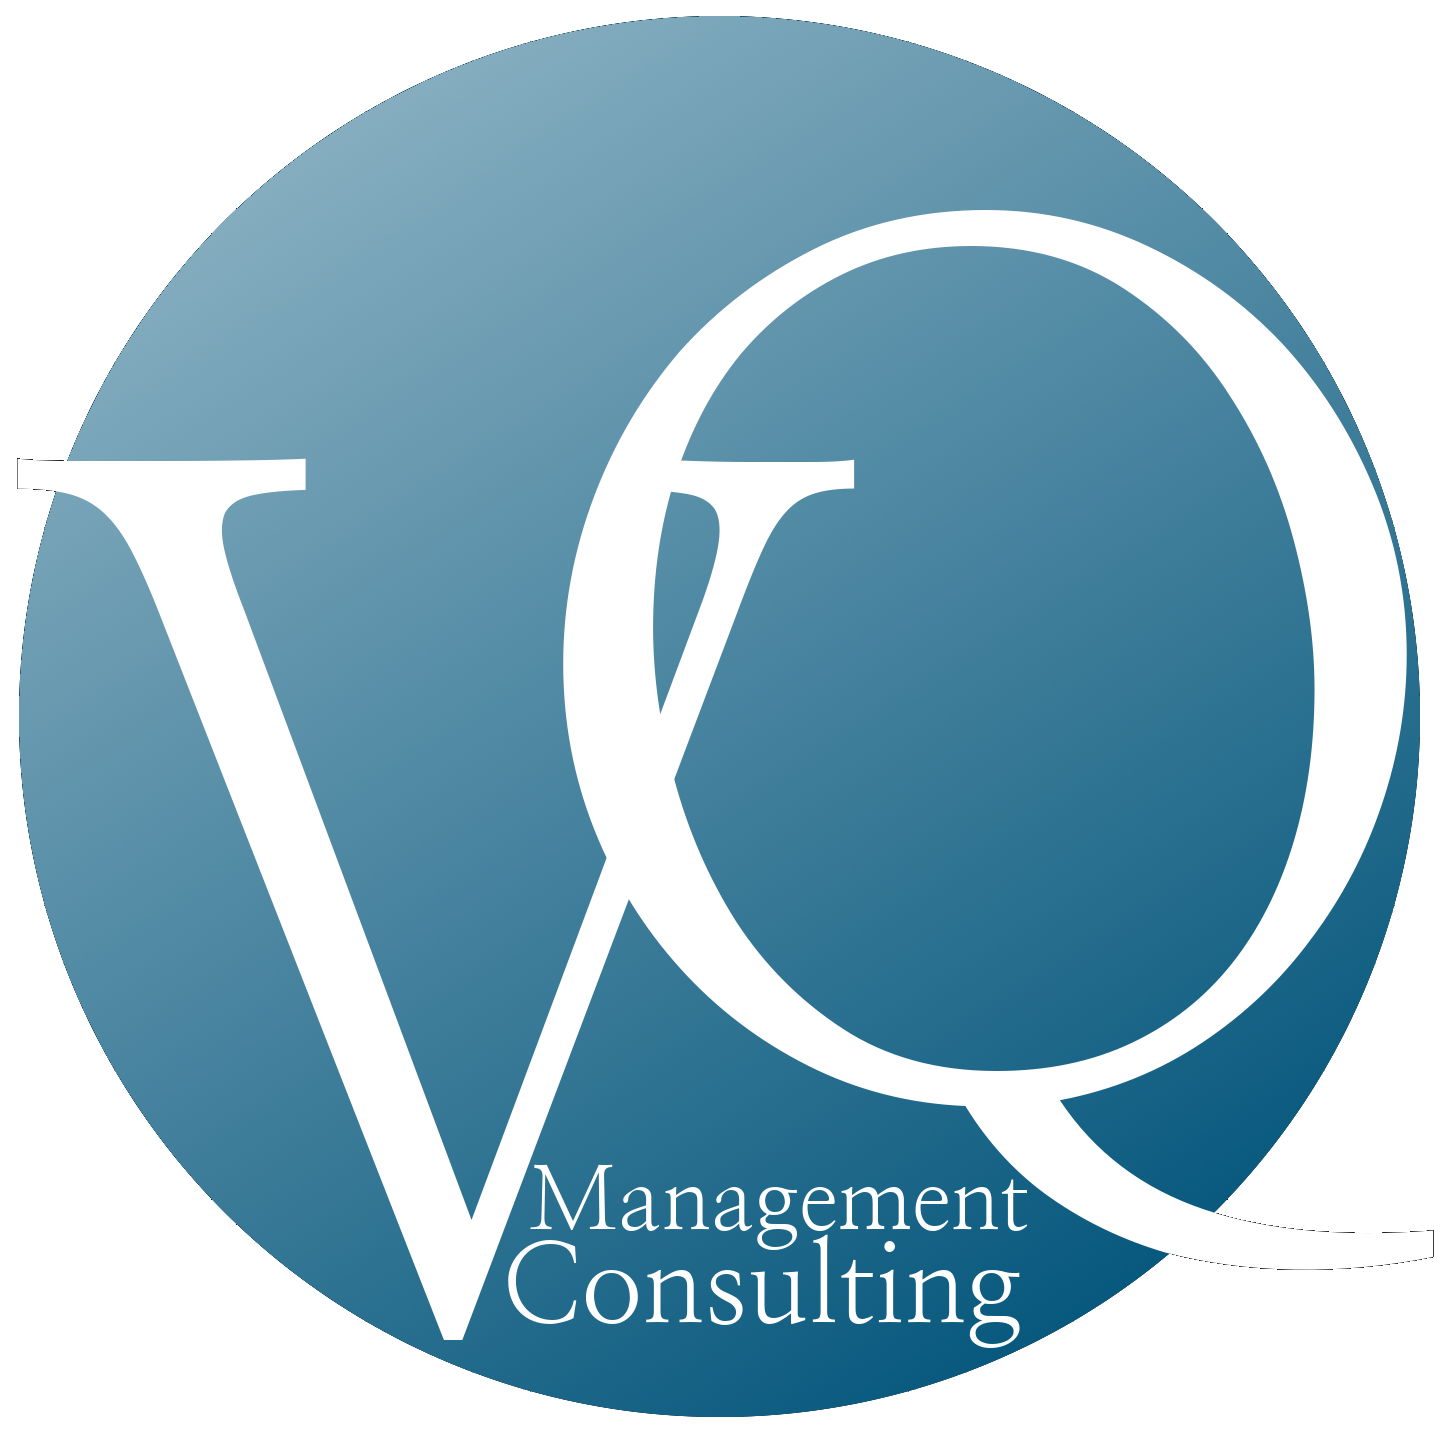 VQ Management Consulting, LLC